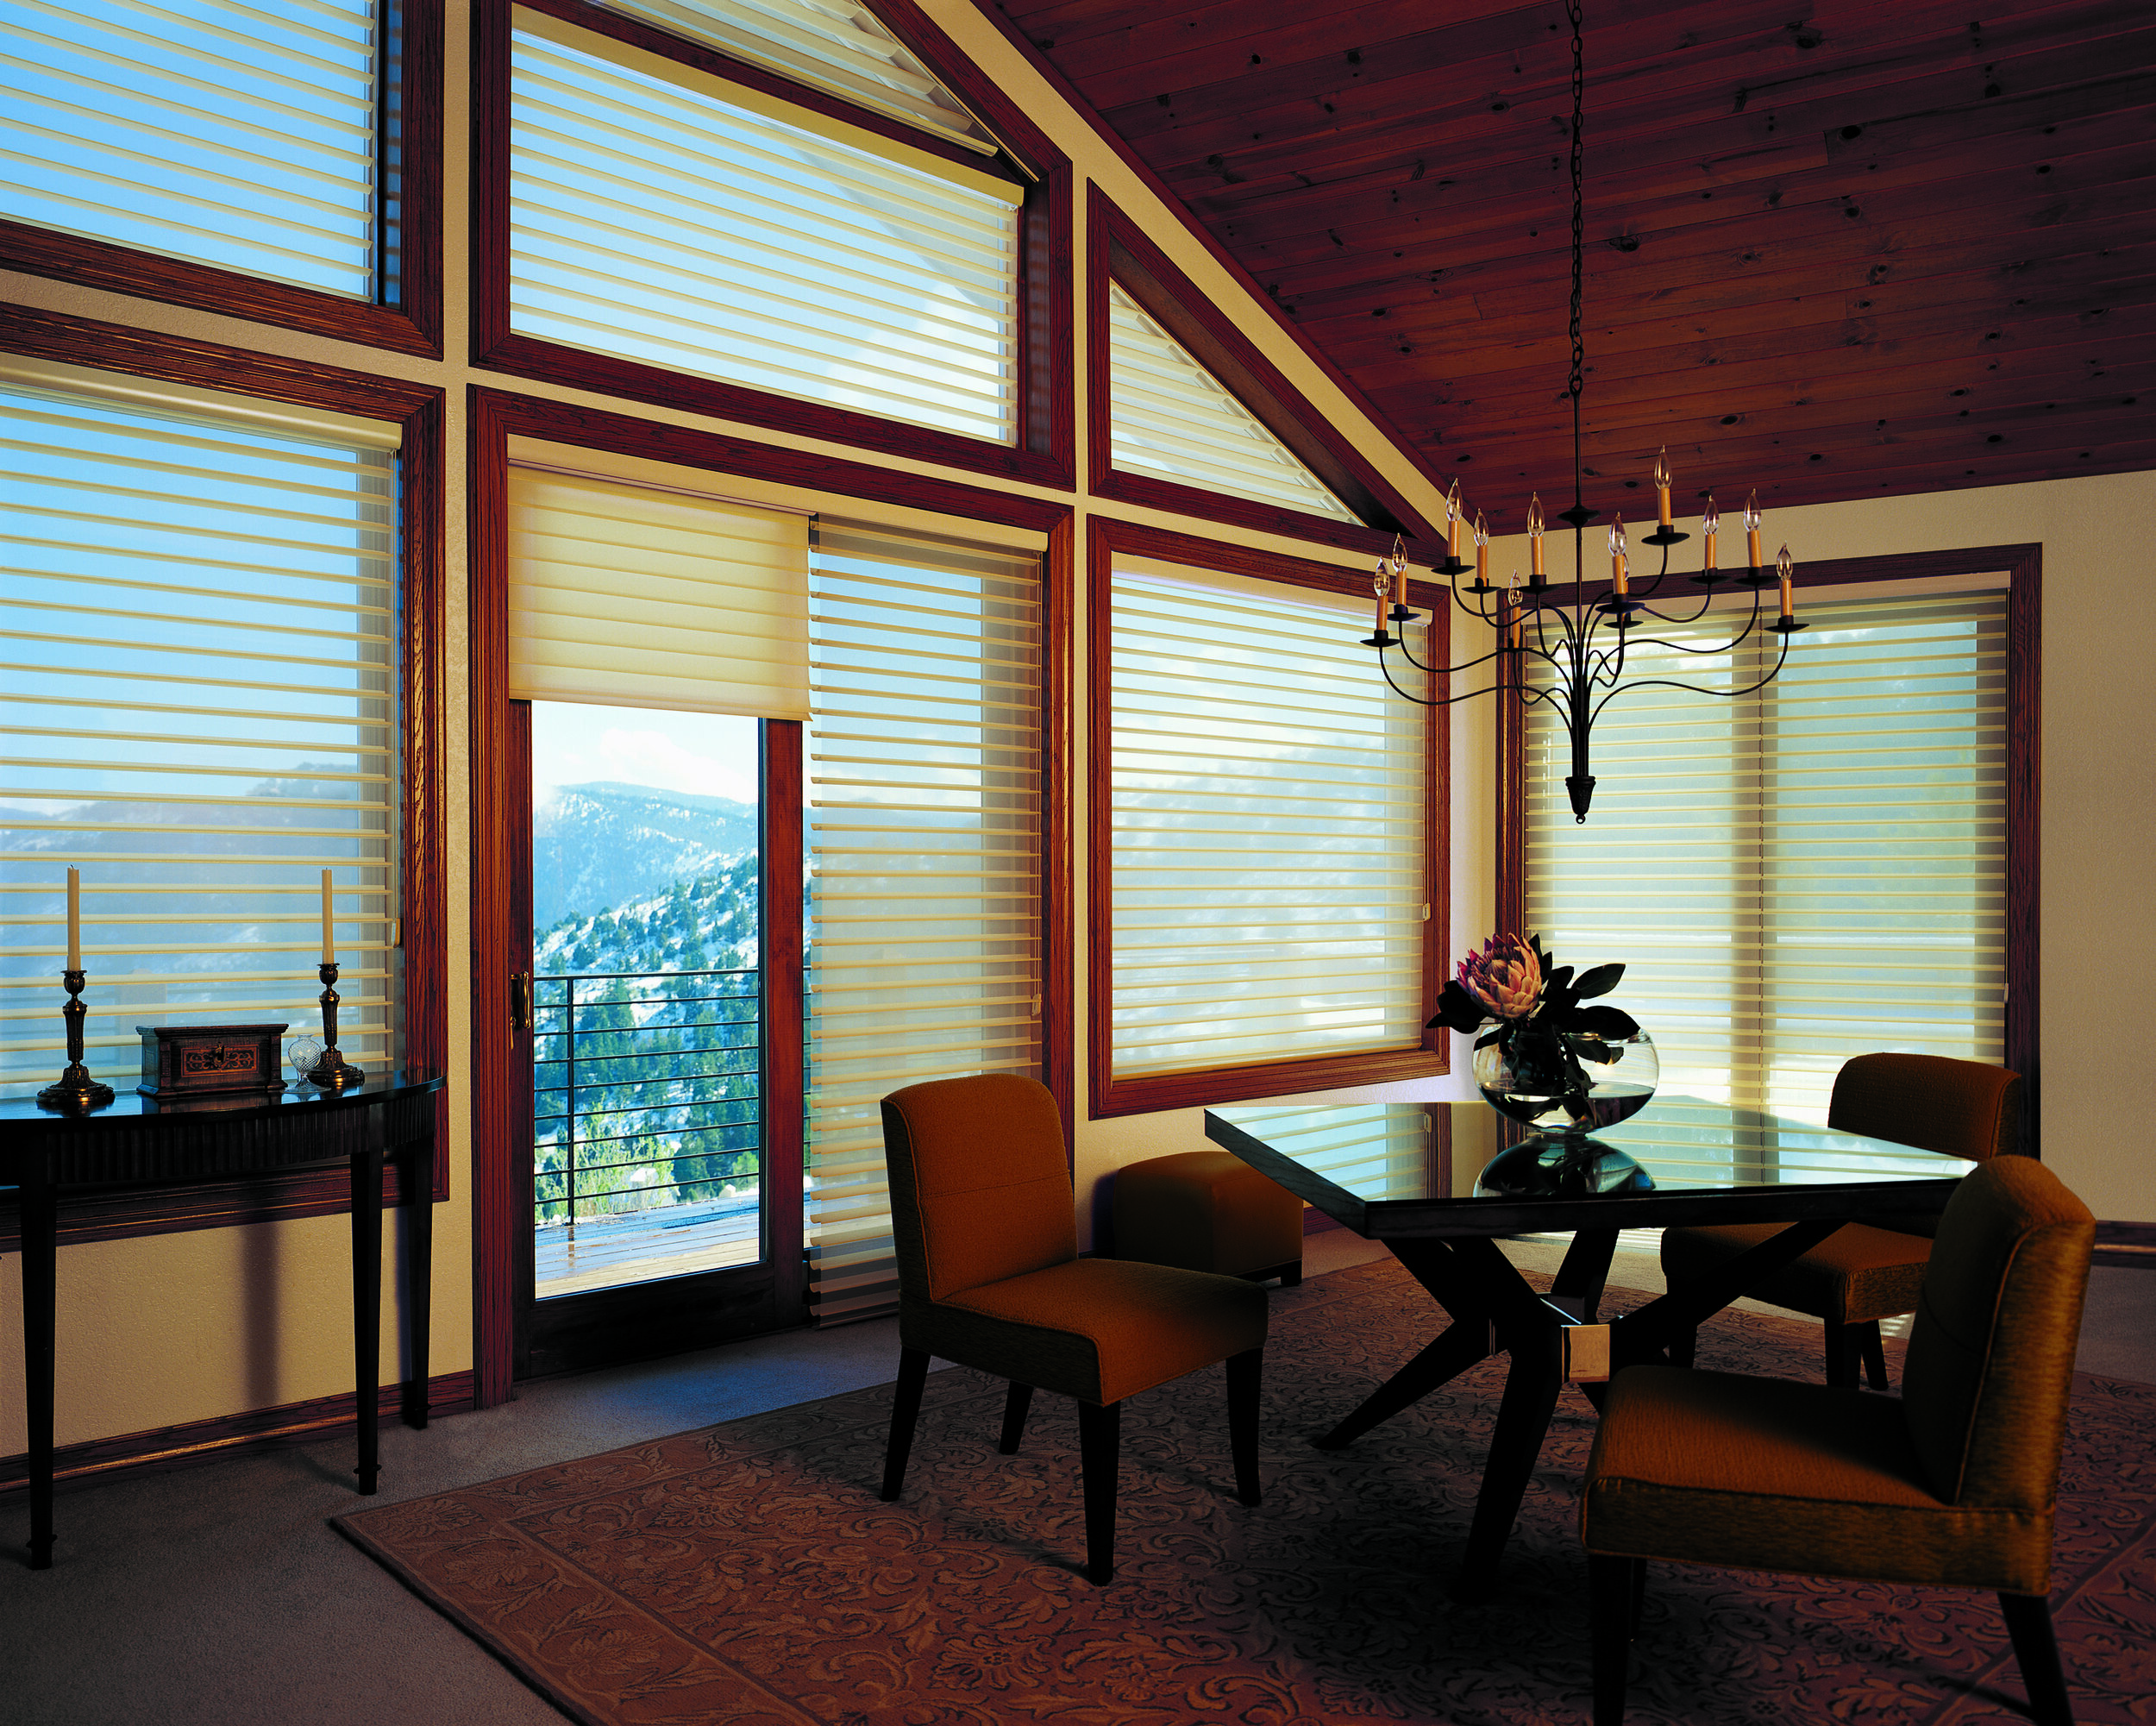 Closing and opening shades on upper windows is no longer a hassle with motorized window coverings. Learn more on motorization by clicking the pic.